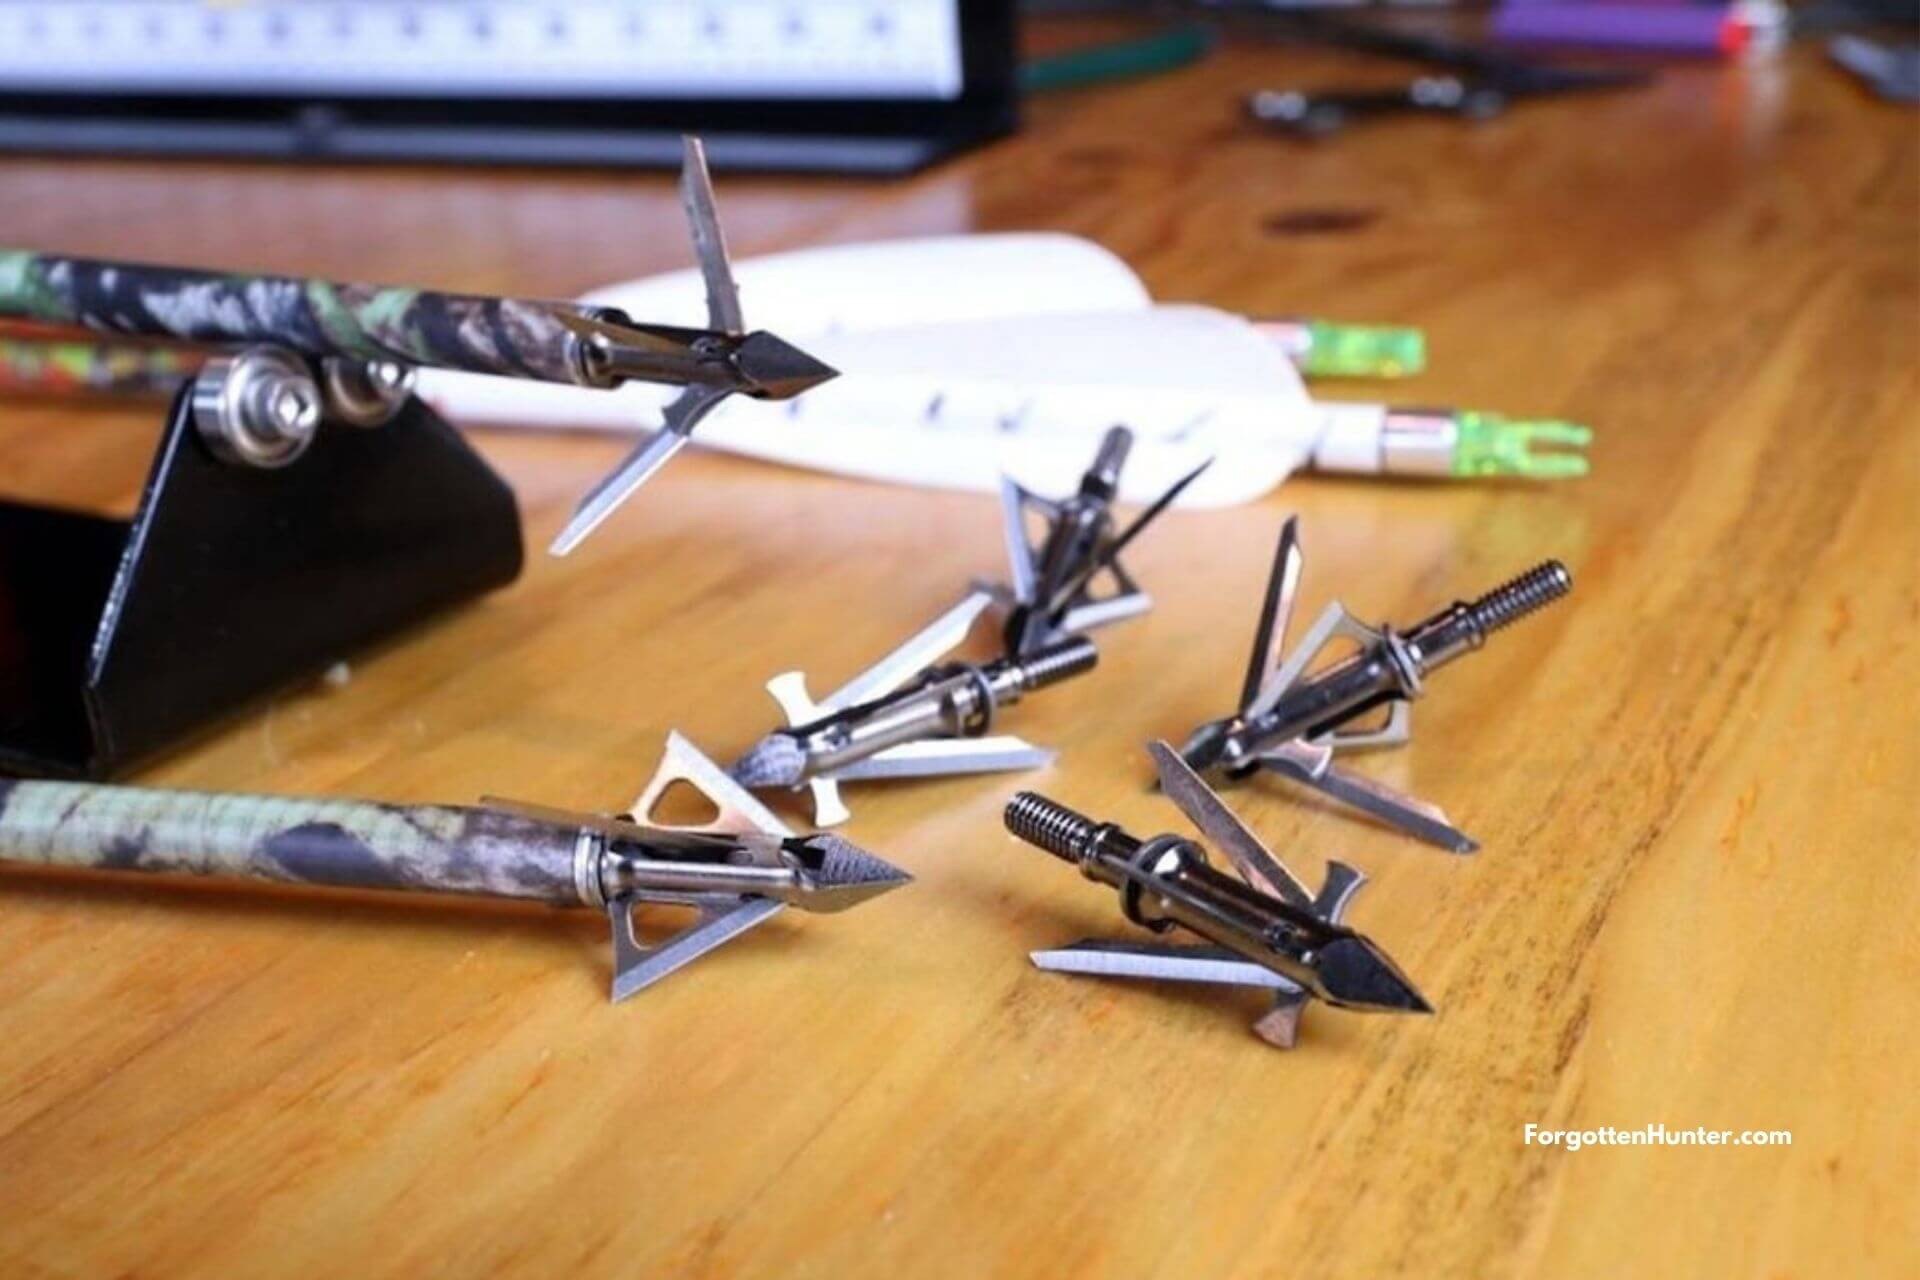 16 Best Broadheads To Buy In 2020 - Tested And Reviewed [Introductory & Buyer's Guide]